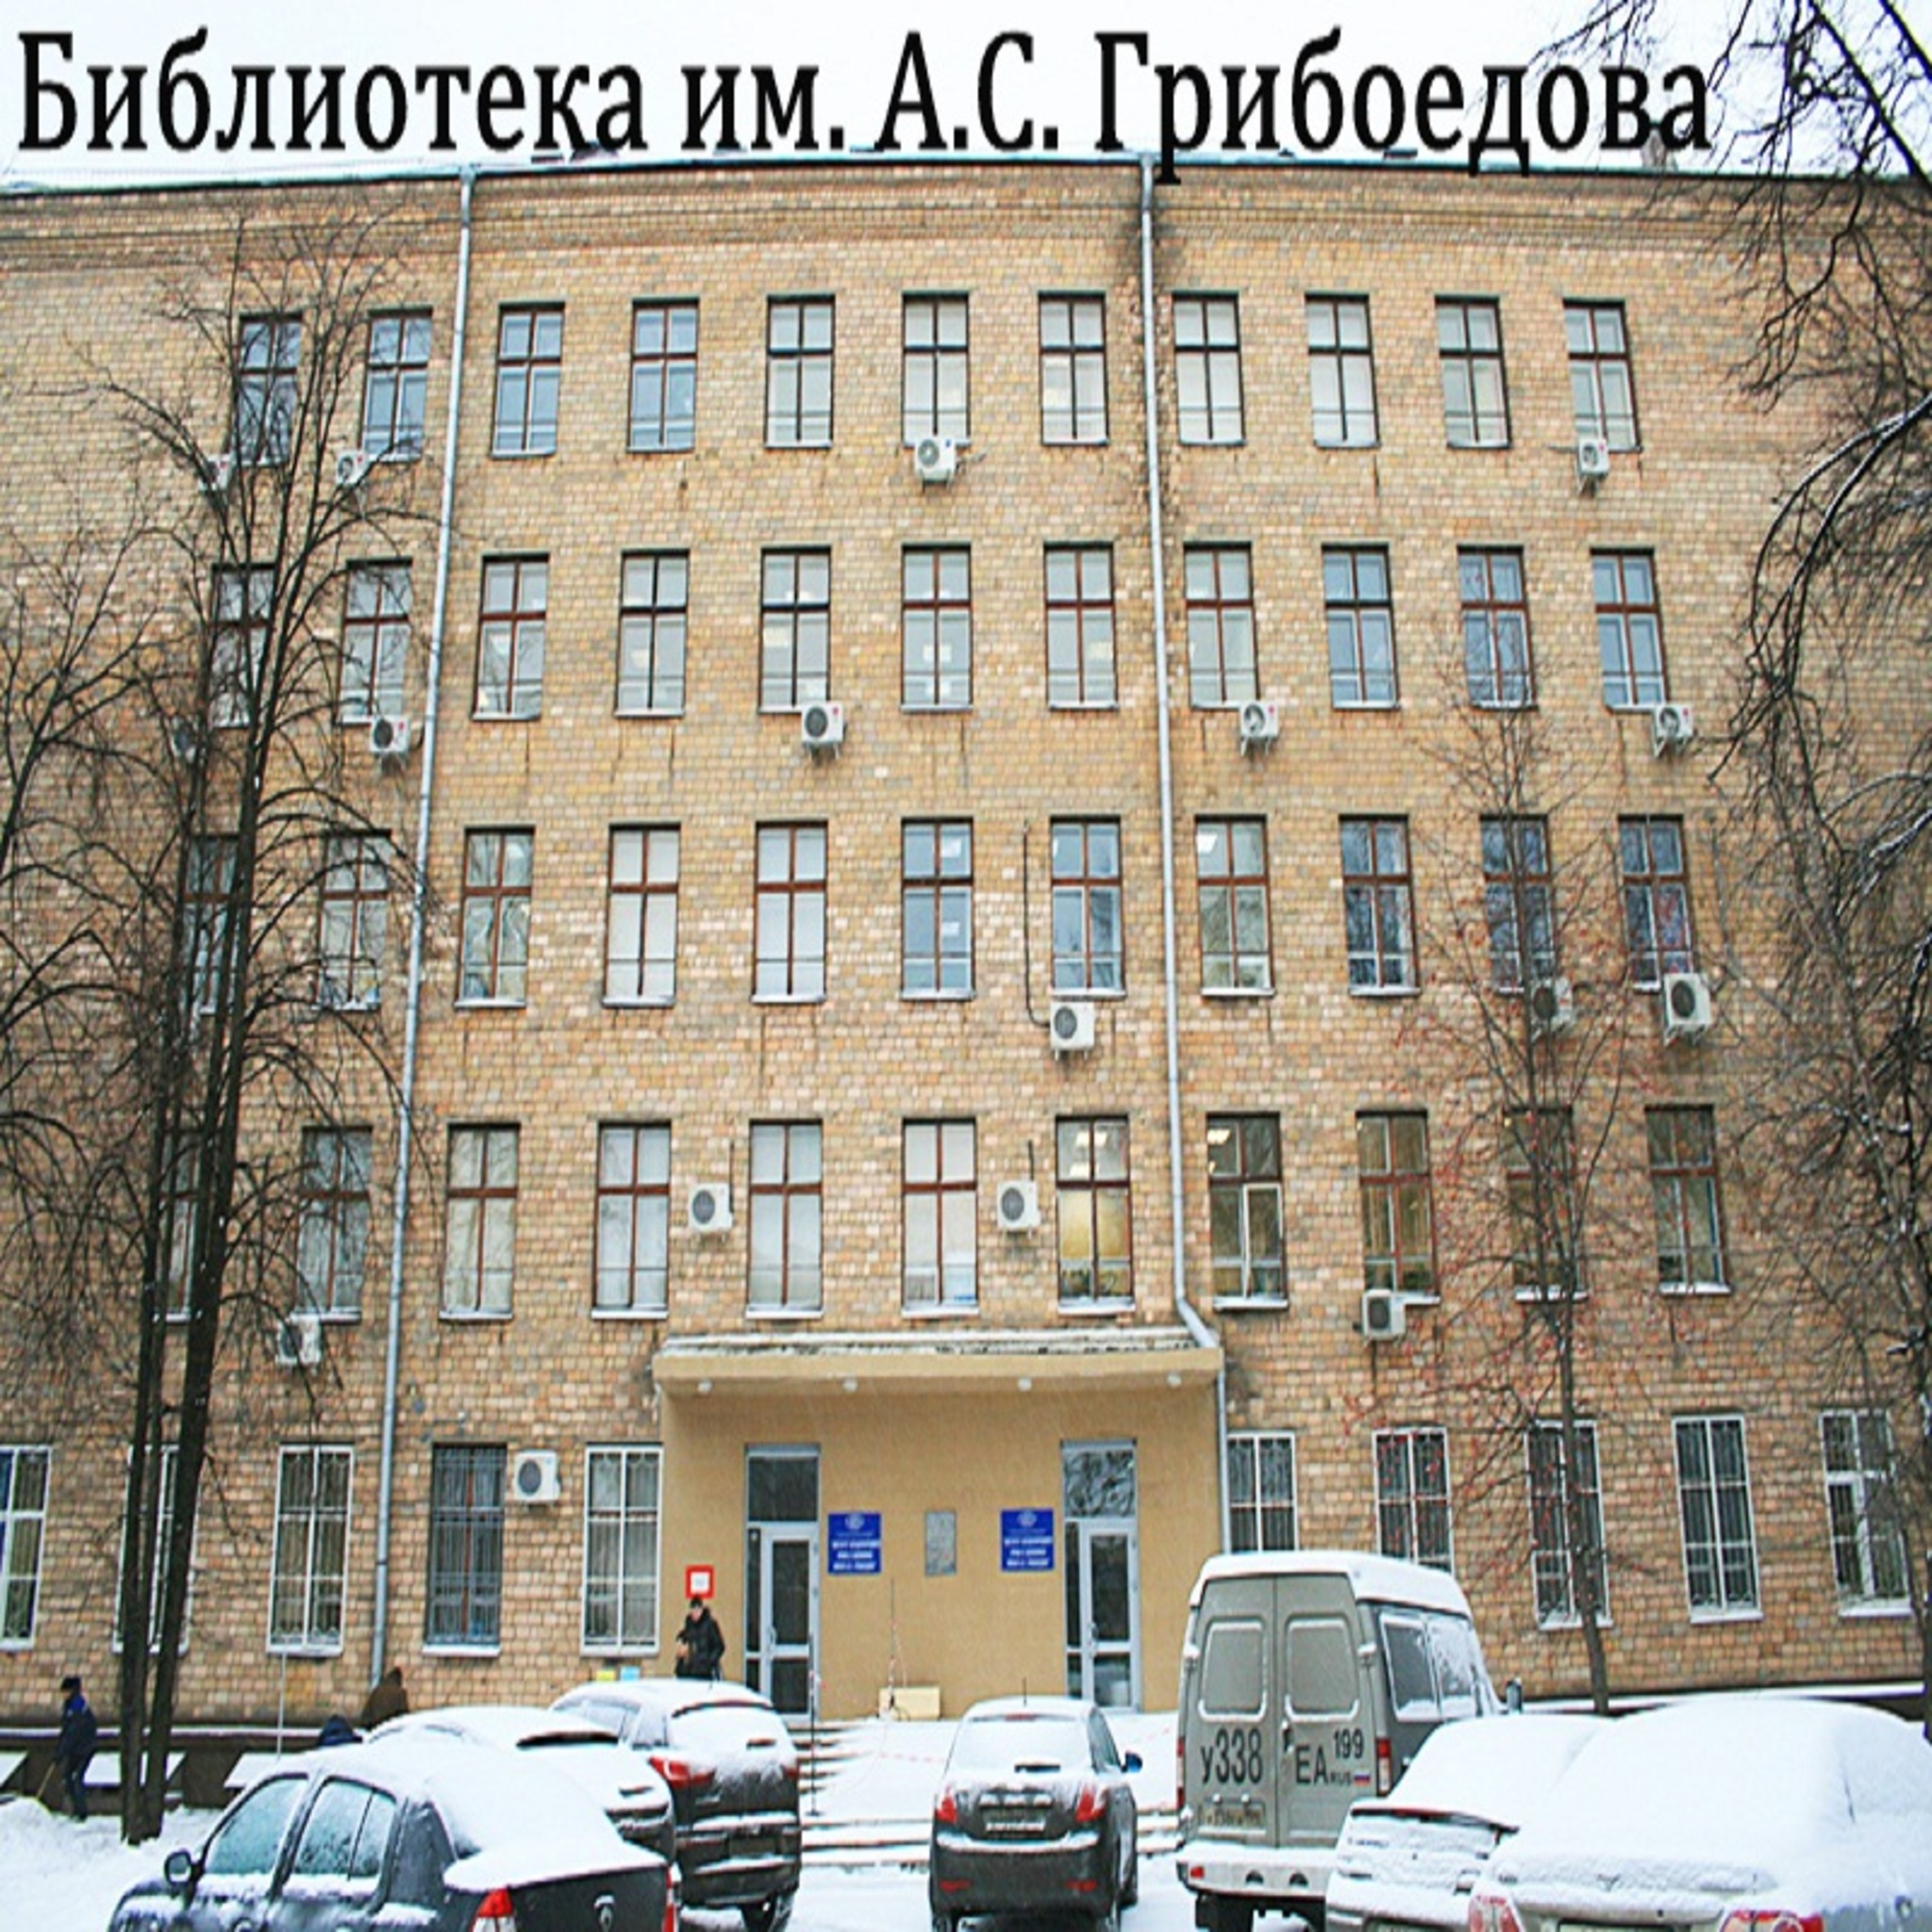 Library them. AS Griboyedov